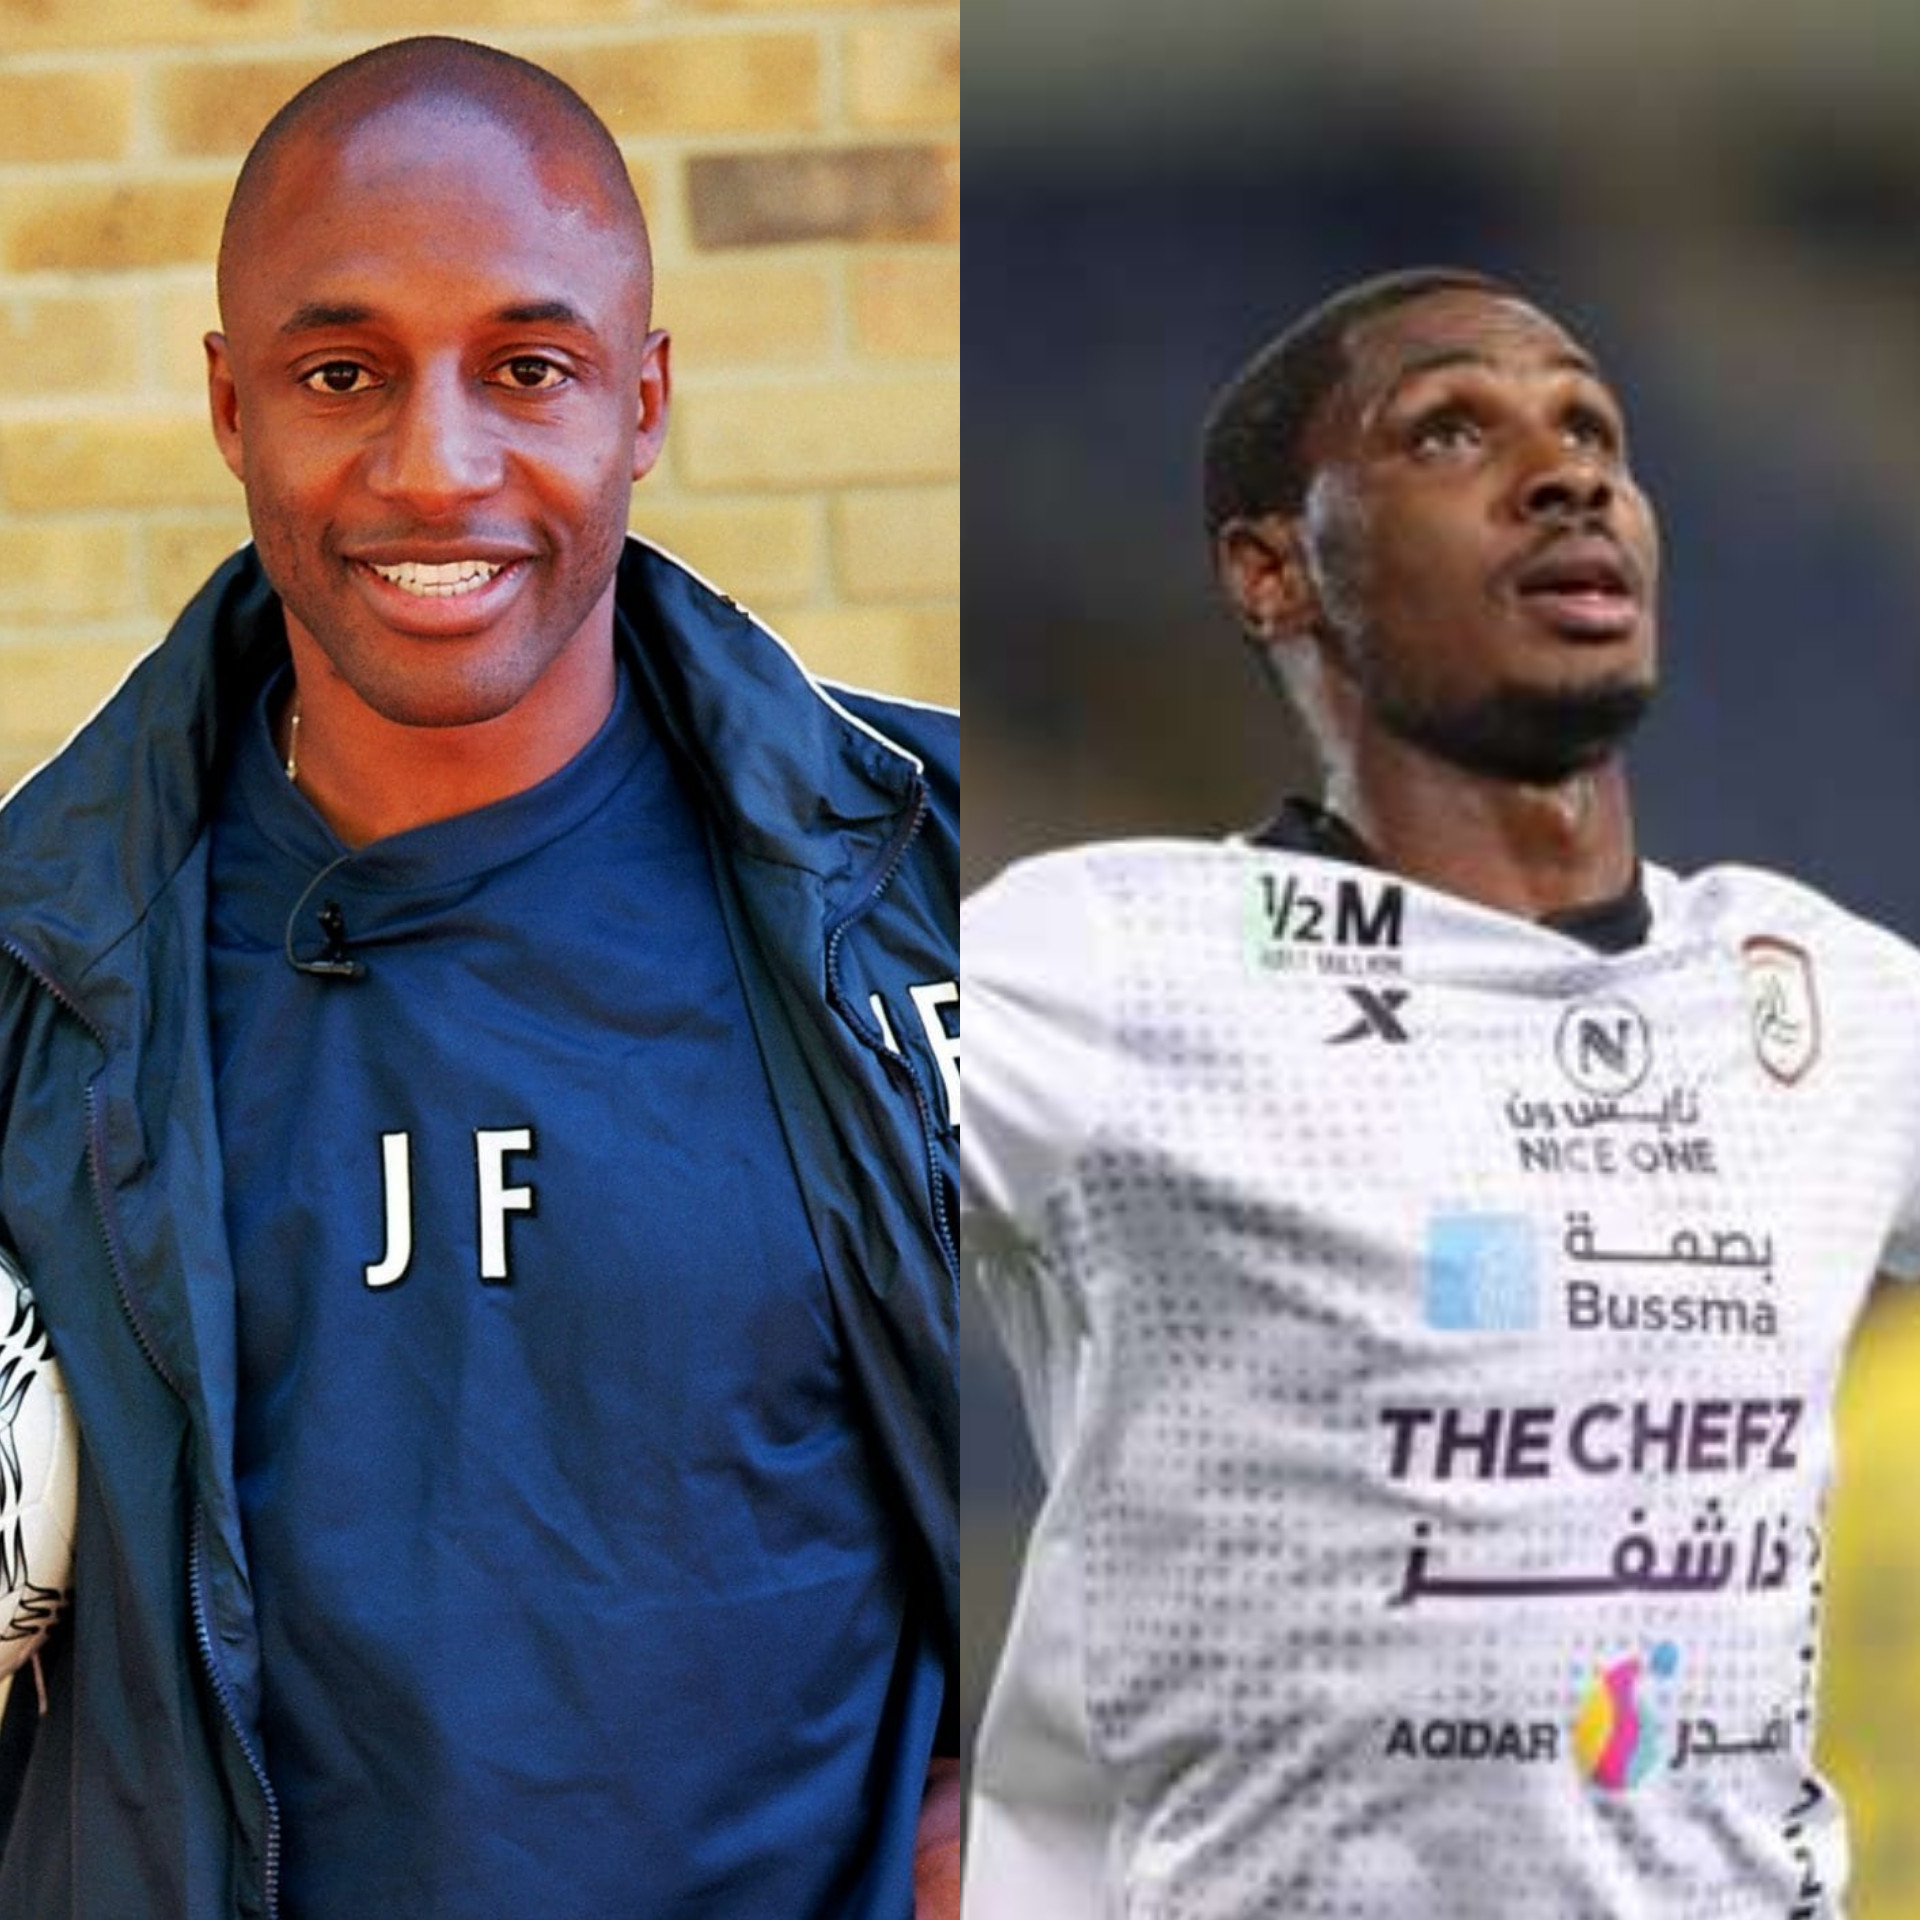 Bringing back Ighalo to Super Eagles could make Osimhen, Iheanacho, Onuachu depressed - John Fashanu advises Gernot Rohr